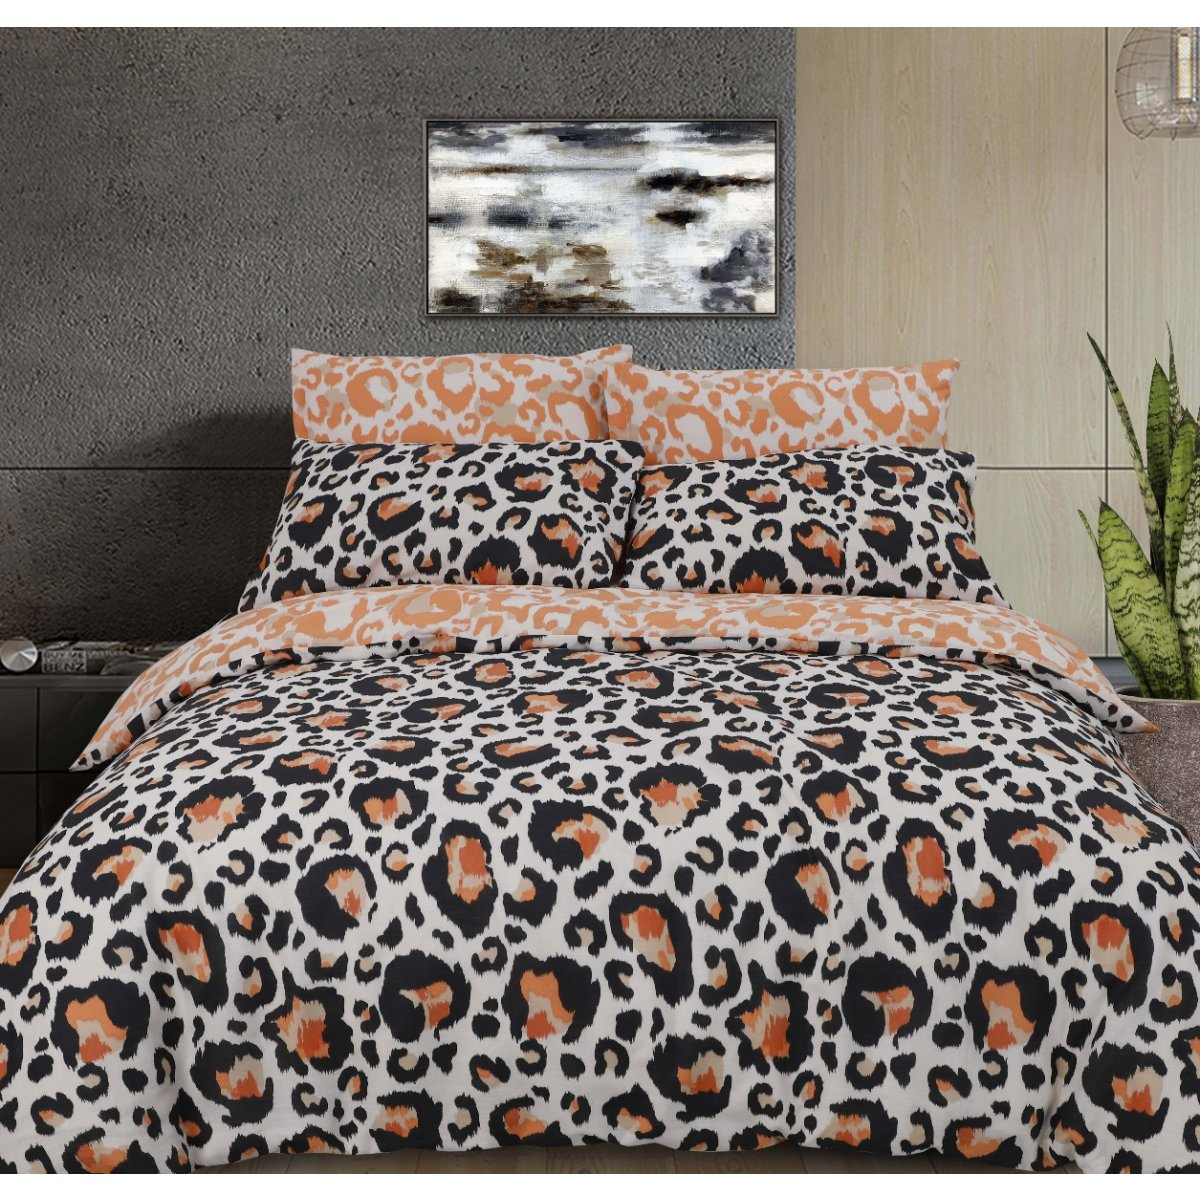 Large leopard Print Natural Bedding - Reversible Duvet Cover and Pillowcase Set